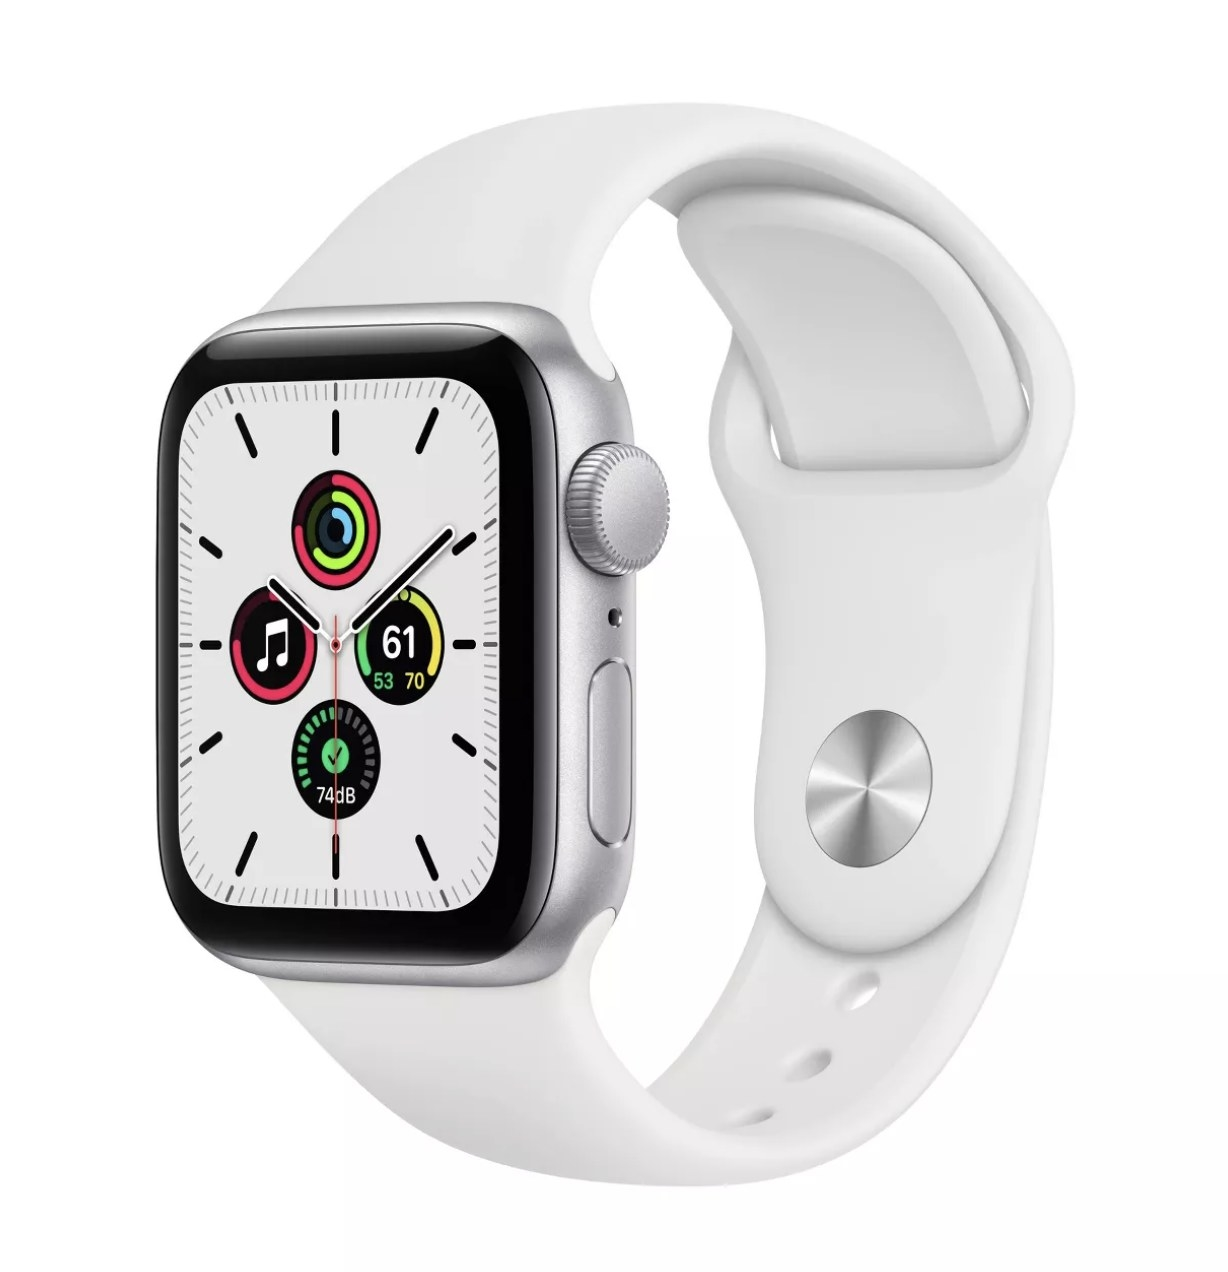 The watch in white